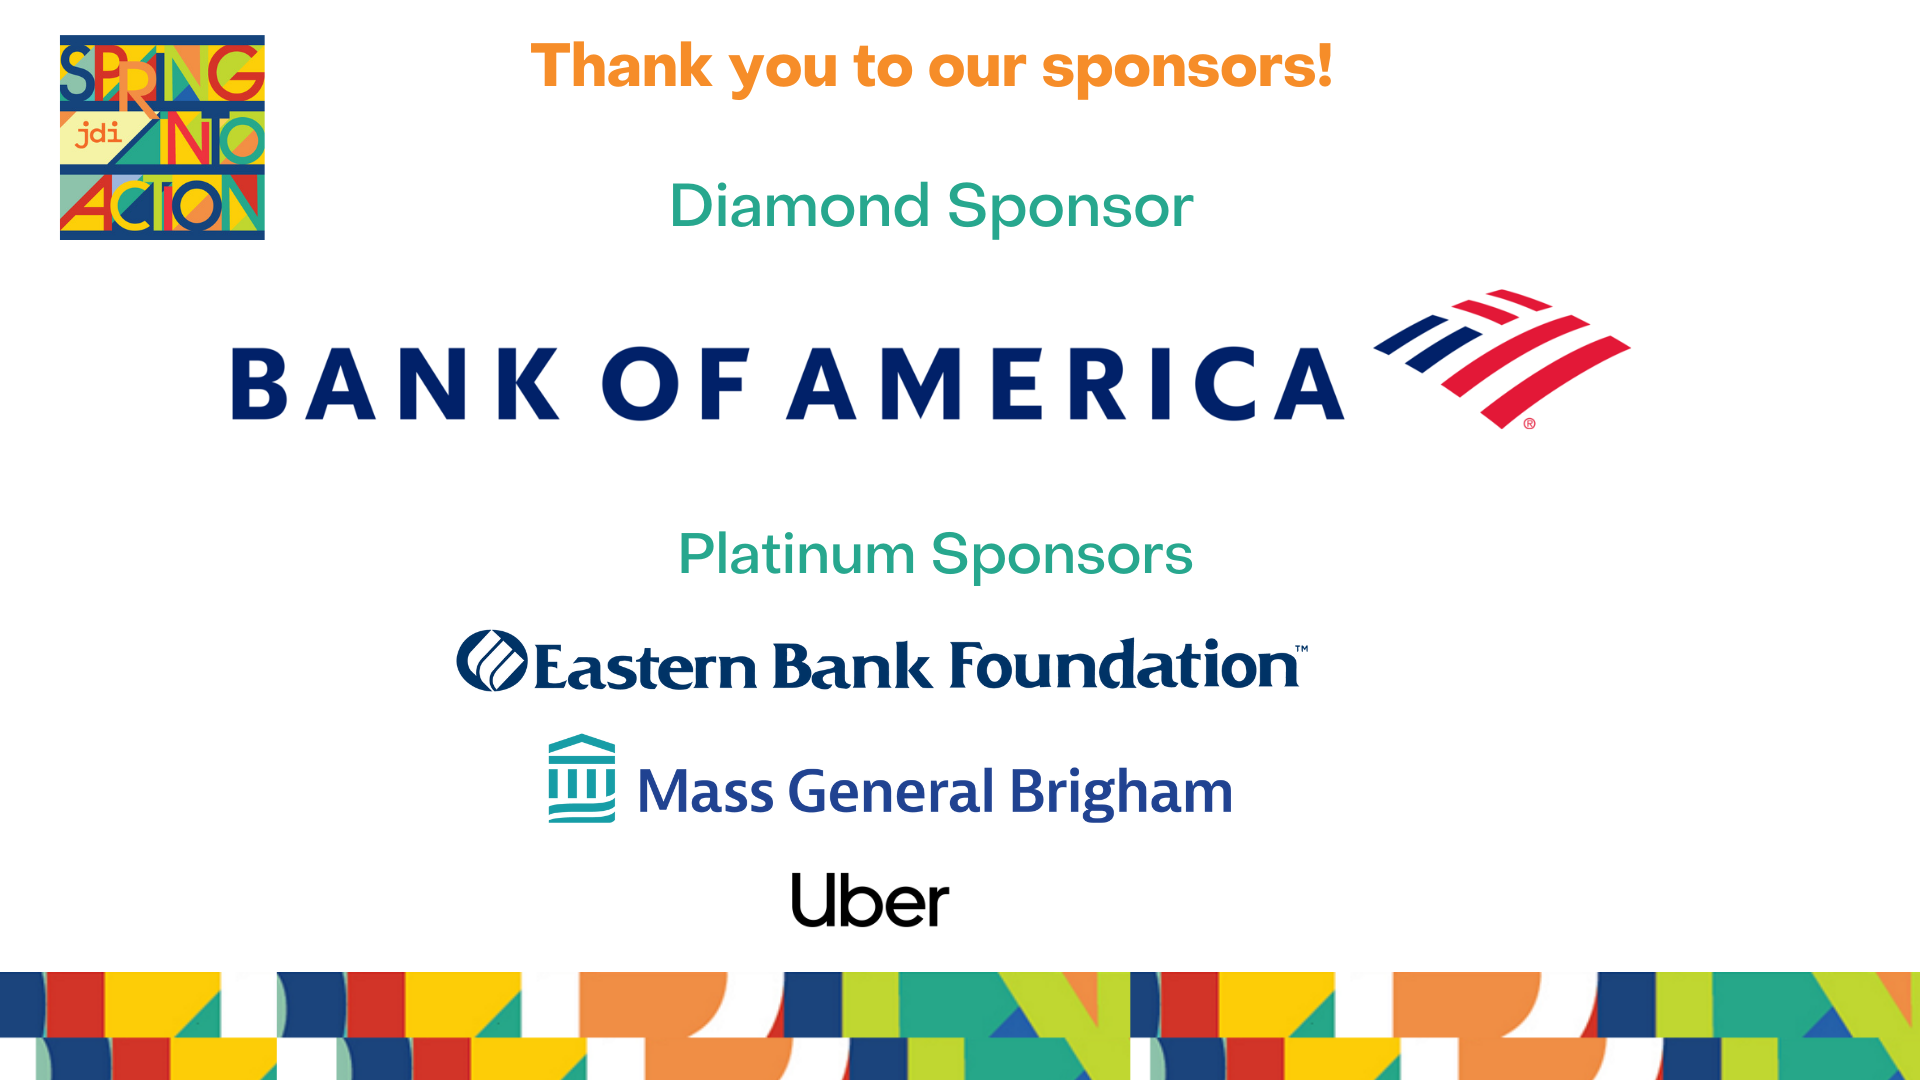 """White background with colorful border and Spring Into Action logo. Orange text saying """"thank you to our sponsors."""" Diamond Sponsor: Bank of America. Platonum sponsors: Eastern Bank Foundation, Mass General Brigham, Uber"""